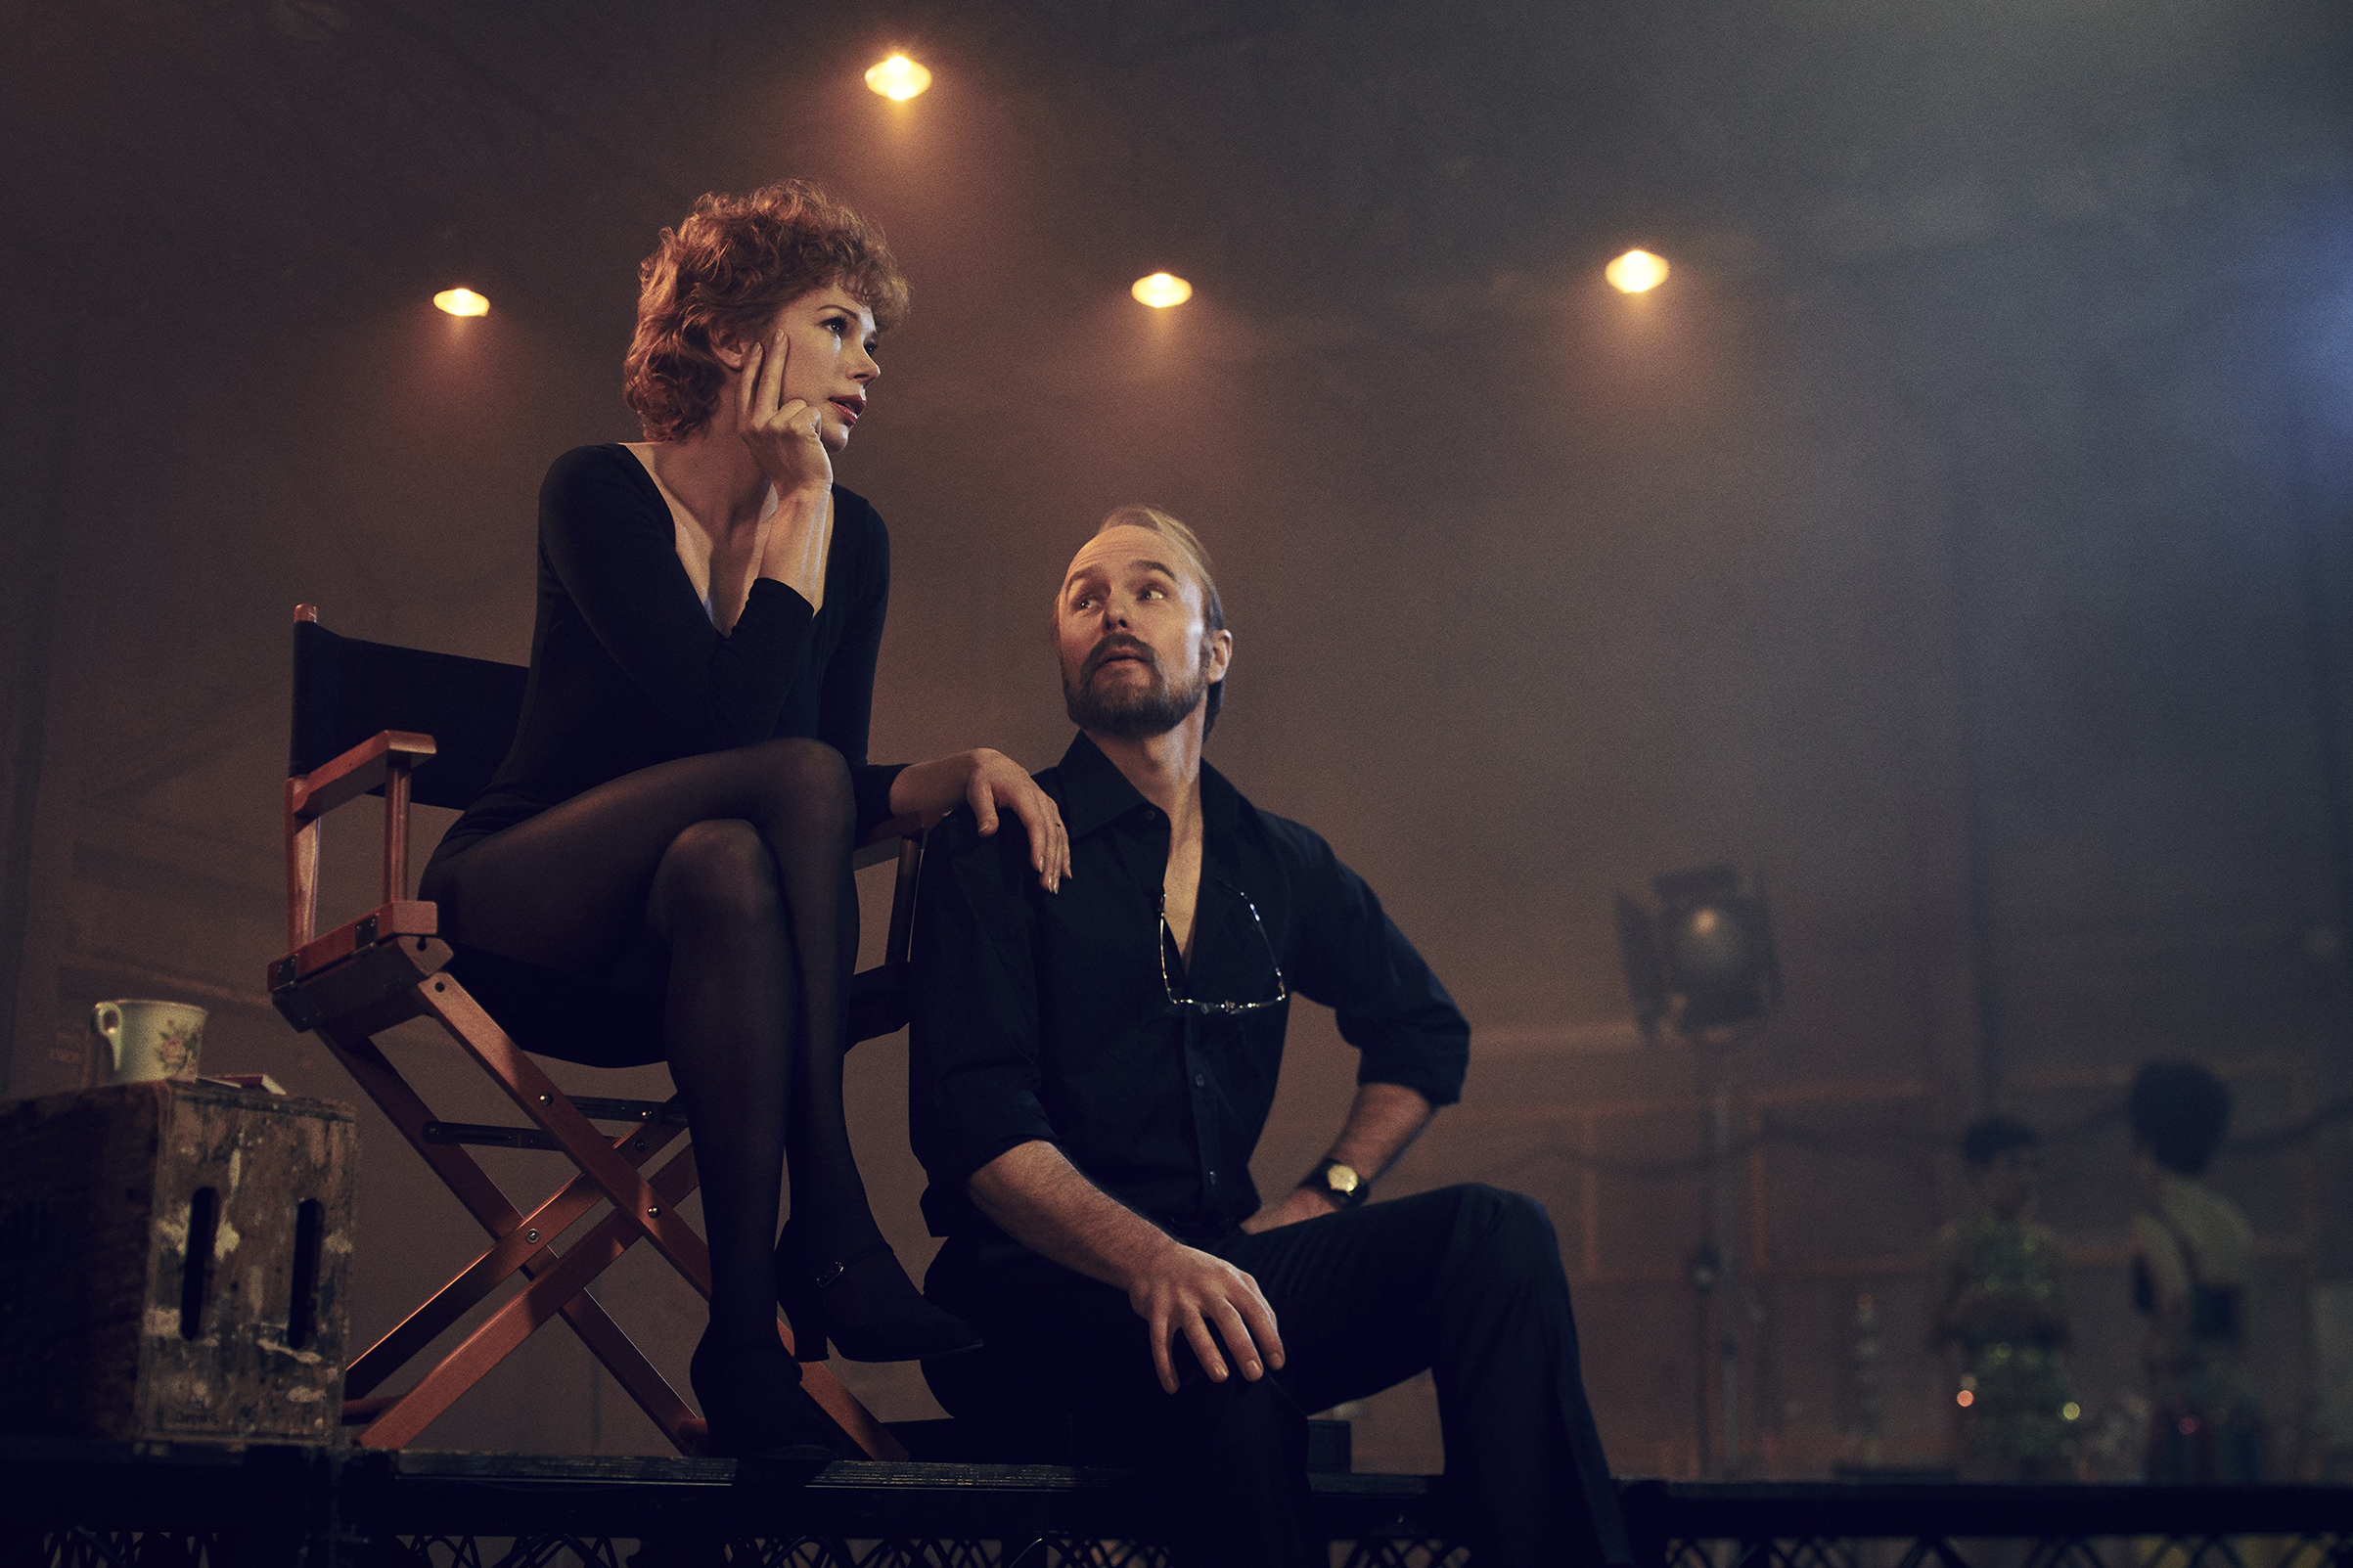 Verdon (Michelle Williams) and Fosse (Sam Rockwell) couldn't live with each other but couldn't work alone